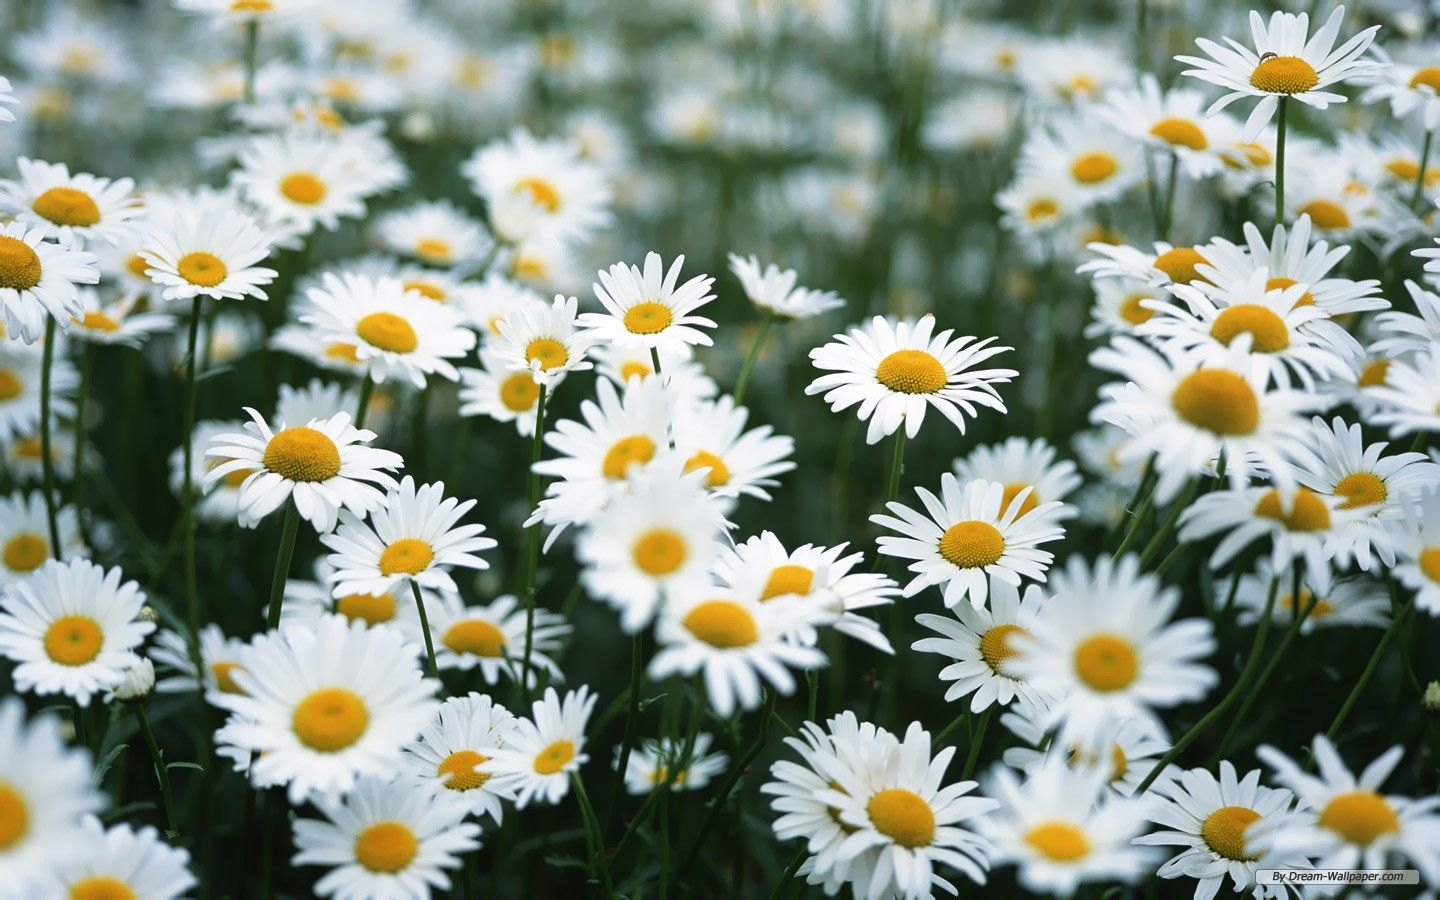 Daisies perfect flowers for your garden the secret garden daisy the birthday flower of april and wedding anniversary symbol of love youth purity the daisy conveys innocence izmirmasajfo Gallery